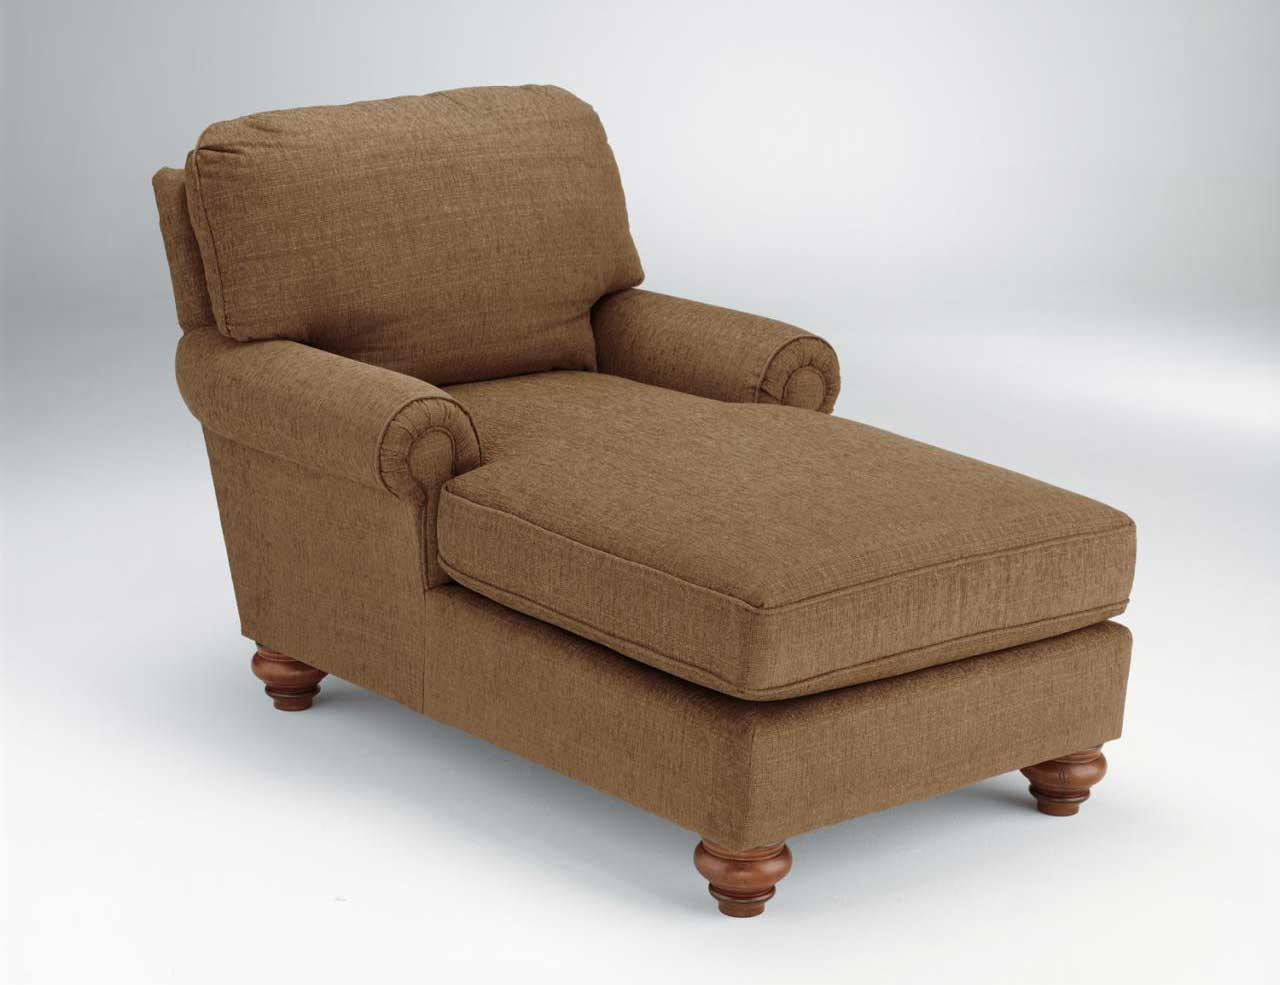 Multifunctional Brown Bed and Accent Chair